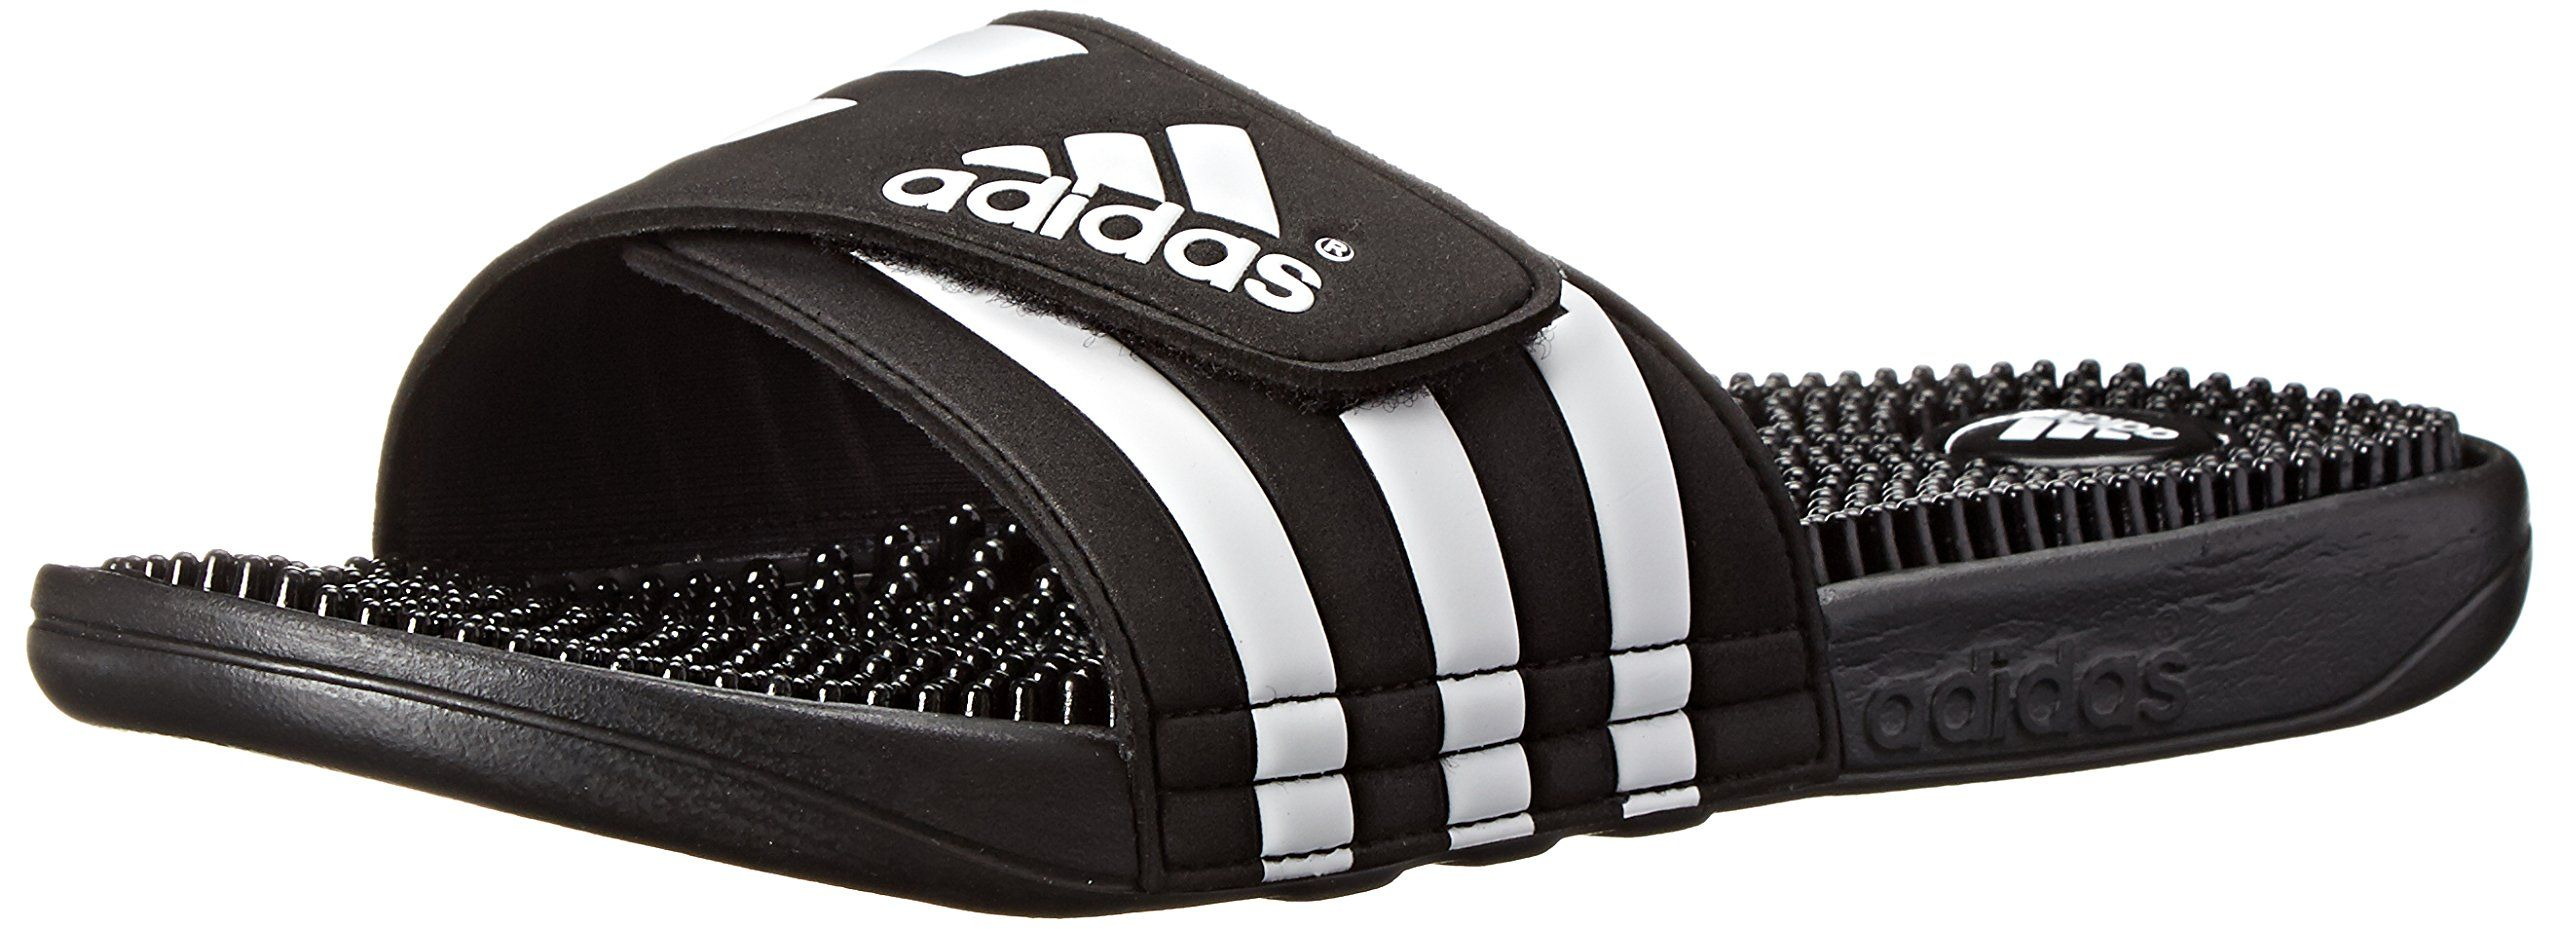 b85108db1a0c adidas Originals Men s Adissage Sandal